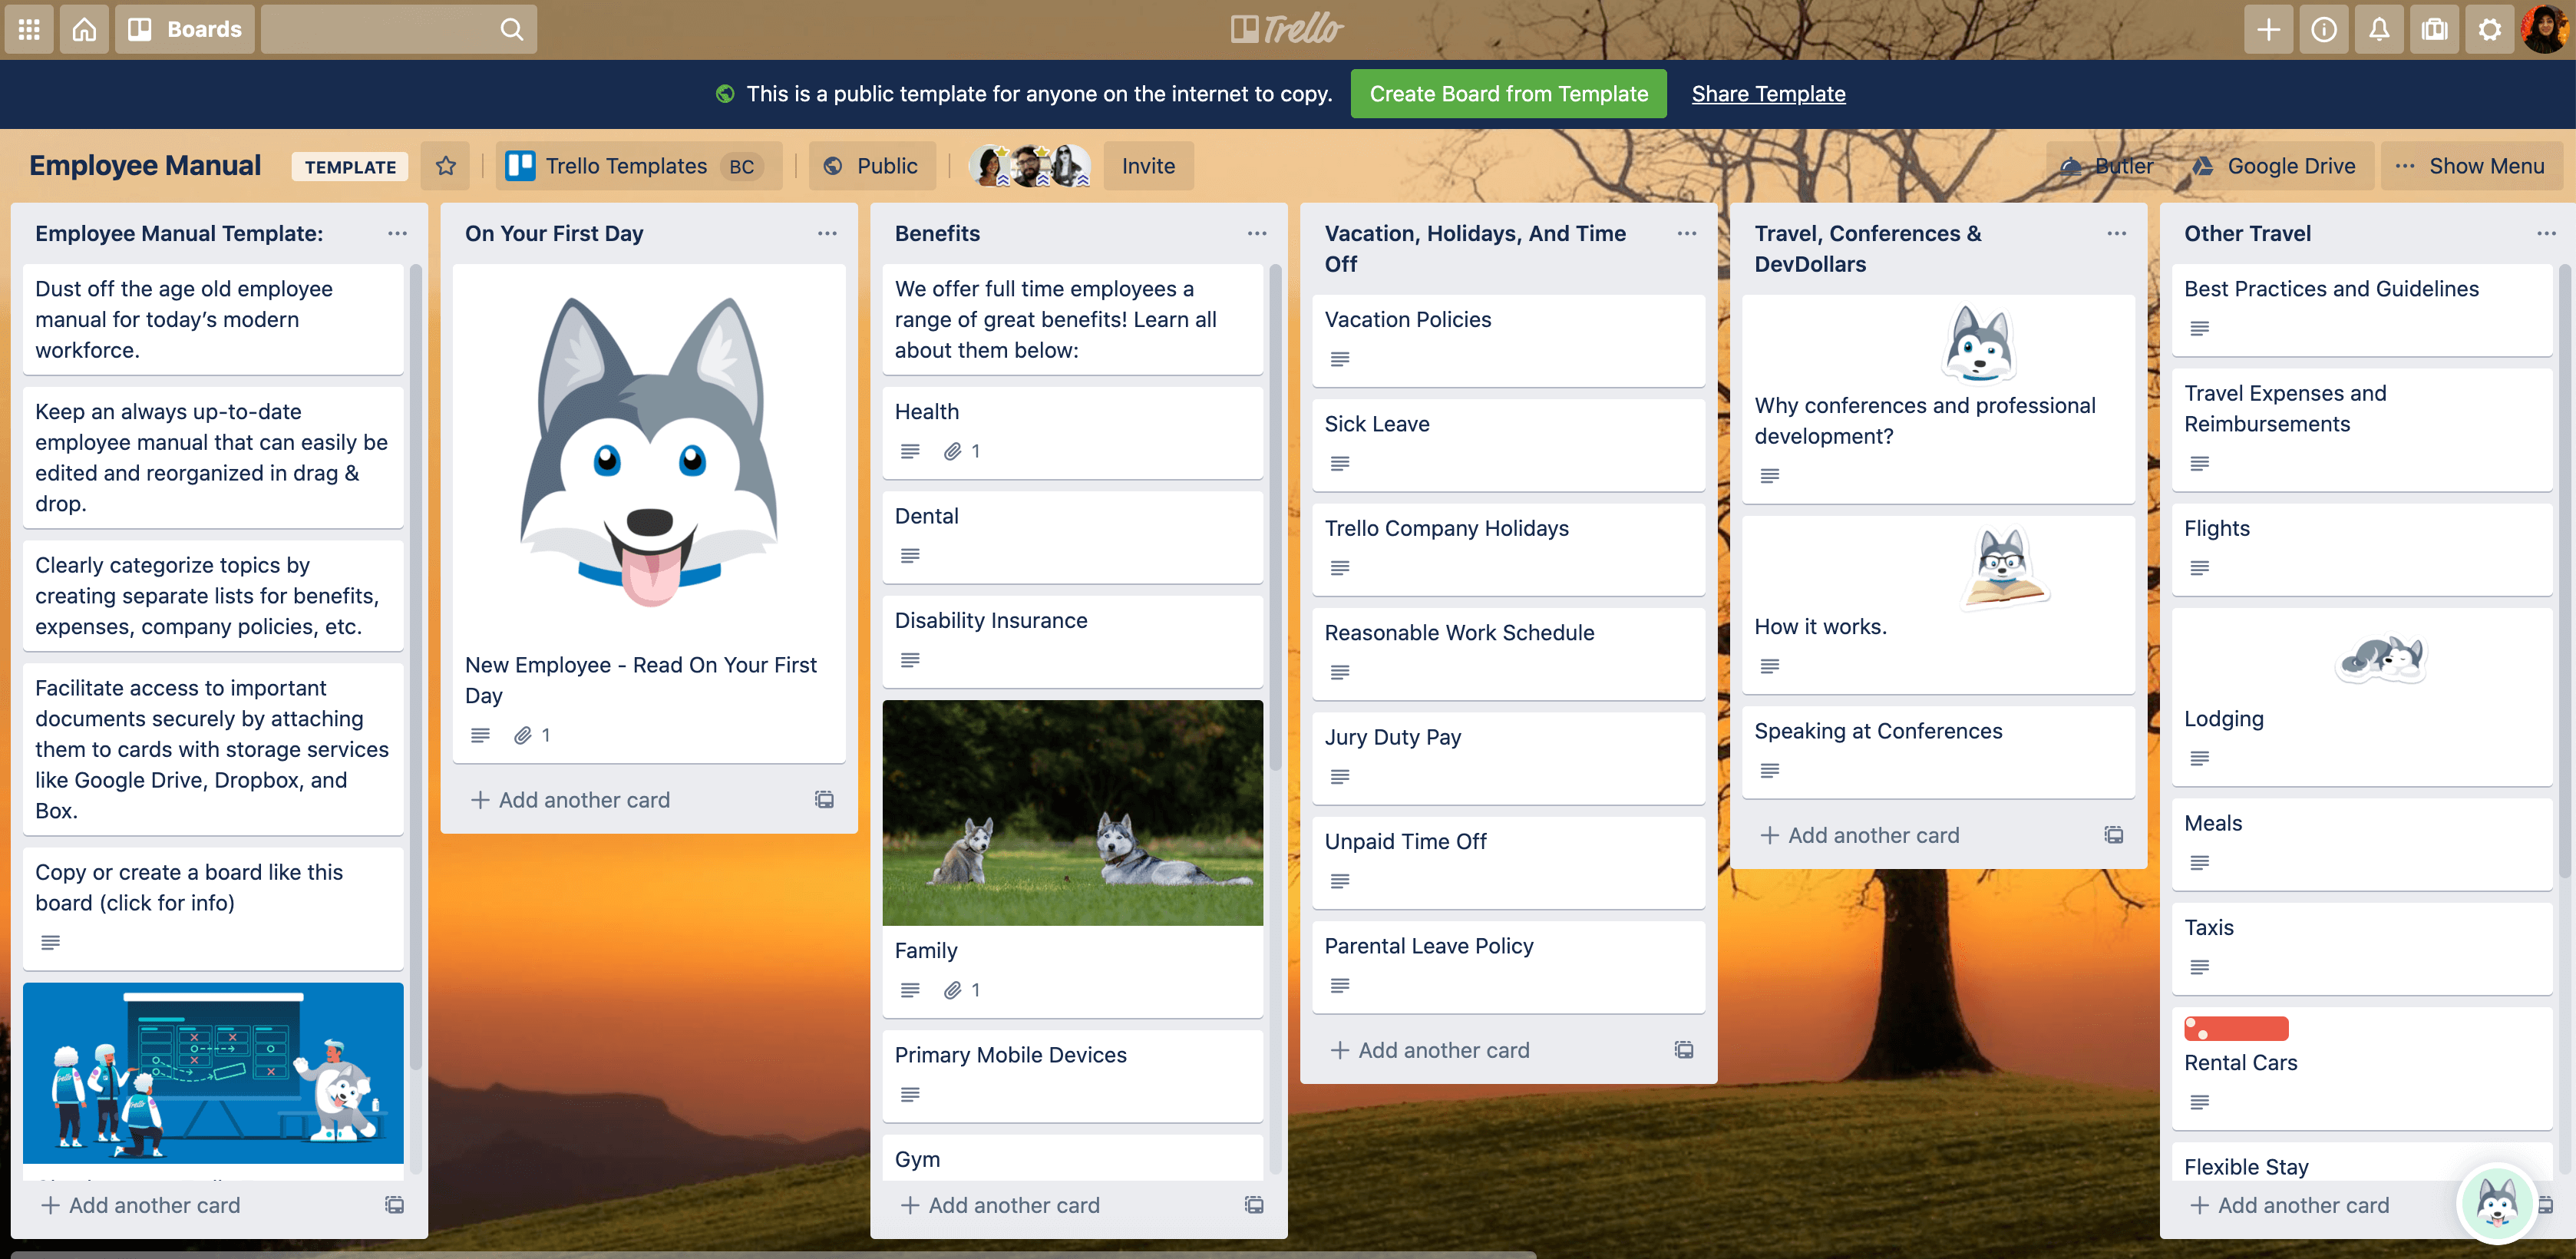 employee manual trello board template